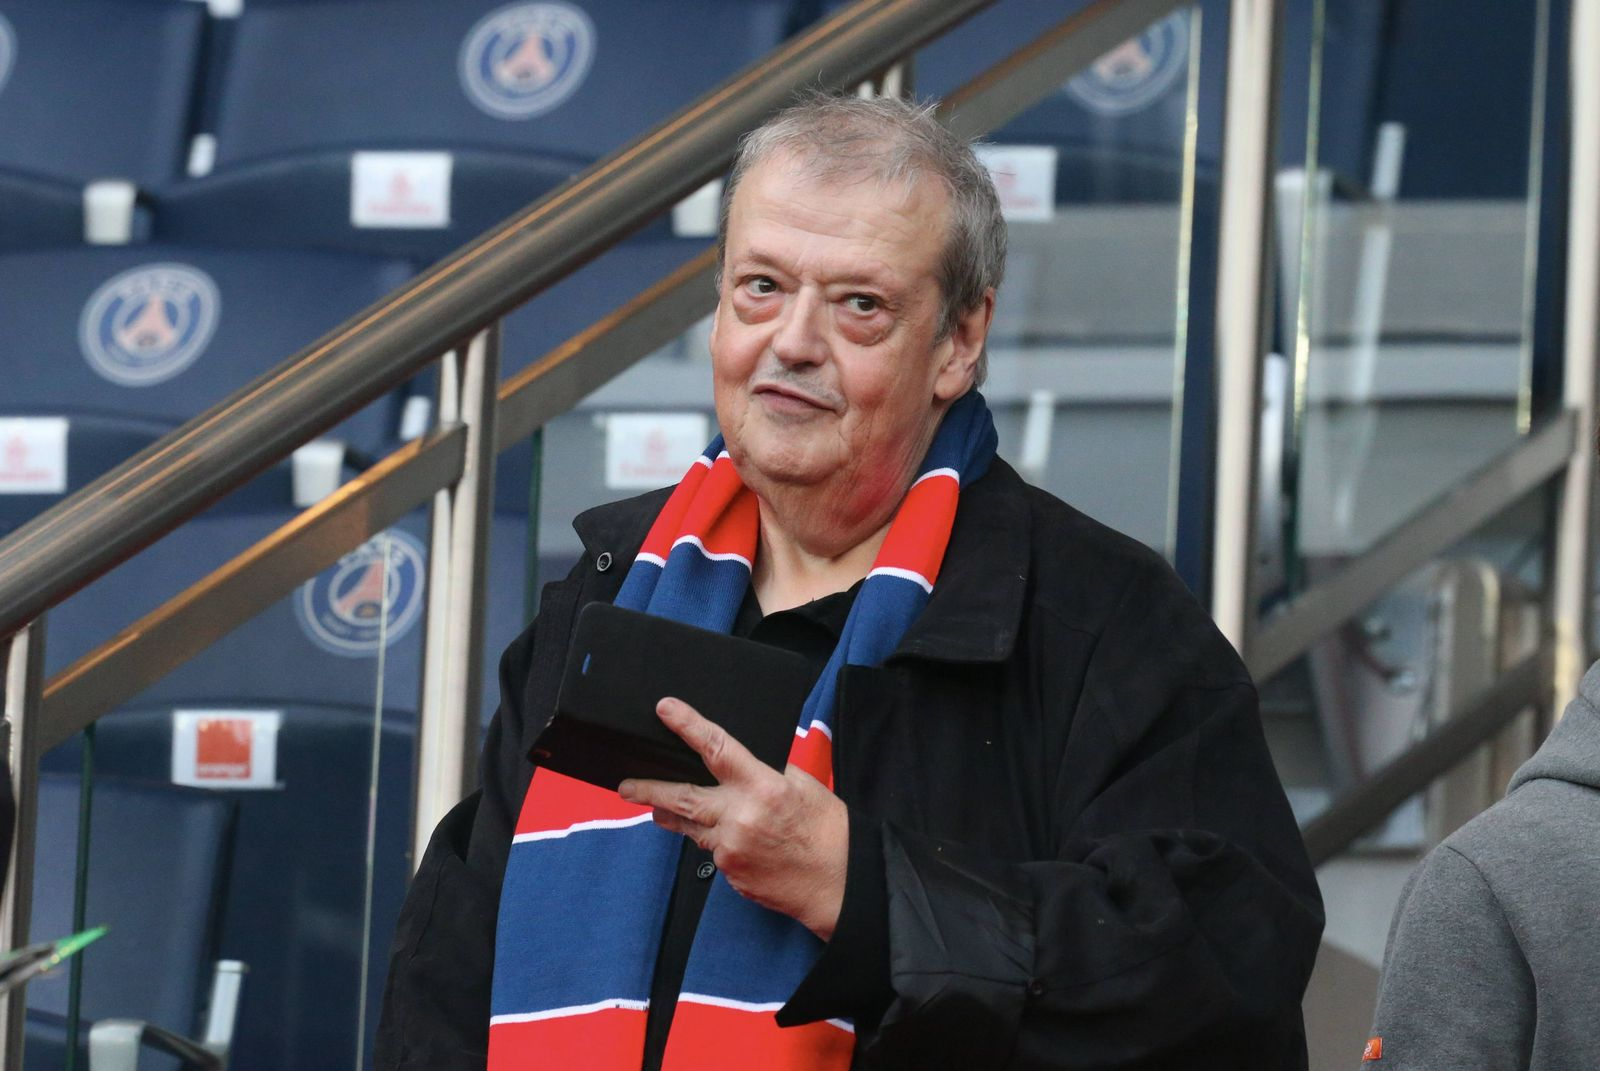 Guy Carlier au Parc des Princes le 7 novembre 2015 à Paris, France. | Photo : Getty Images